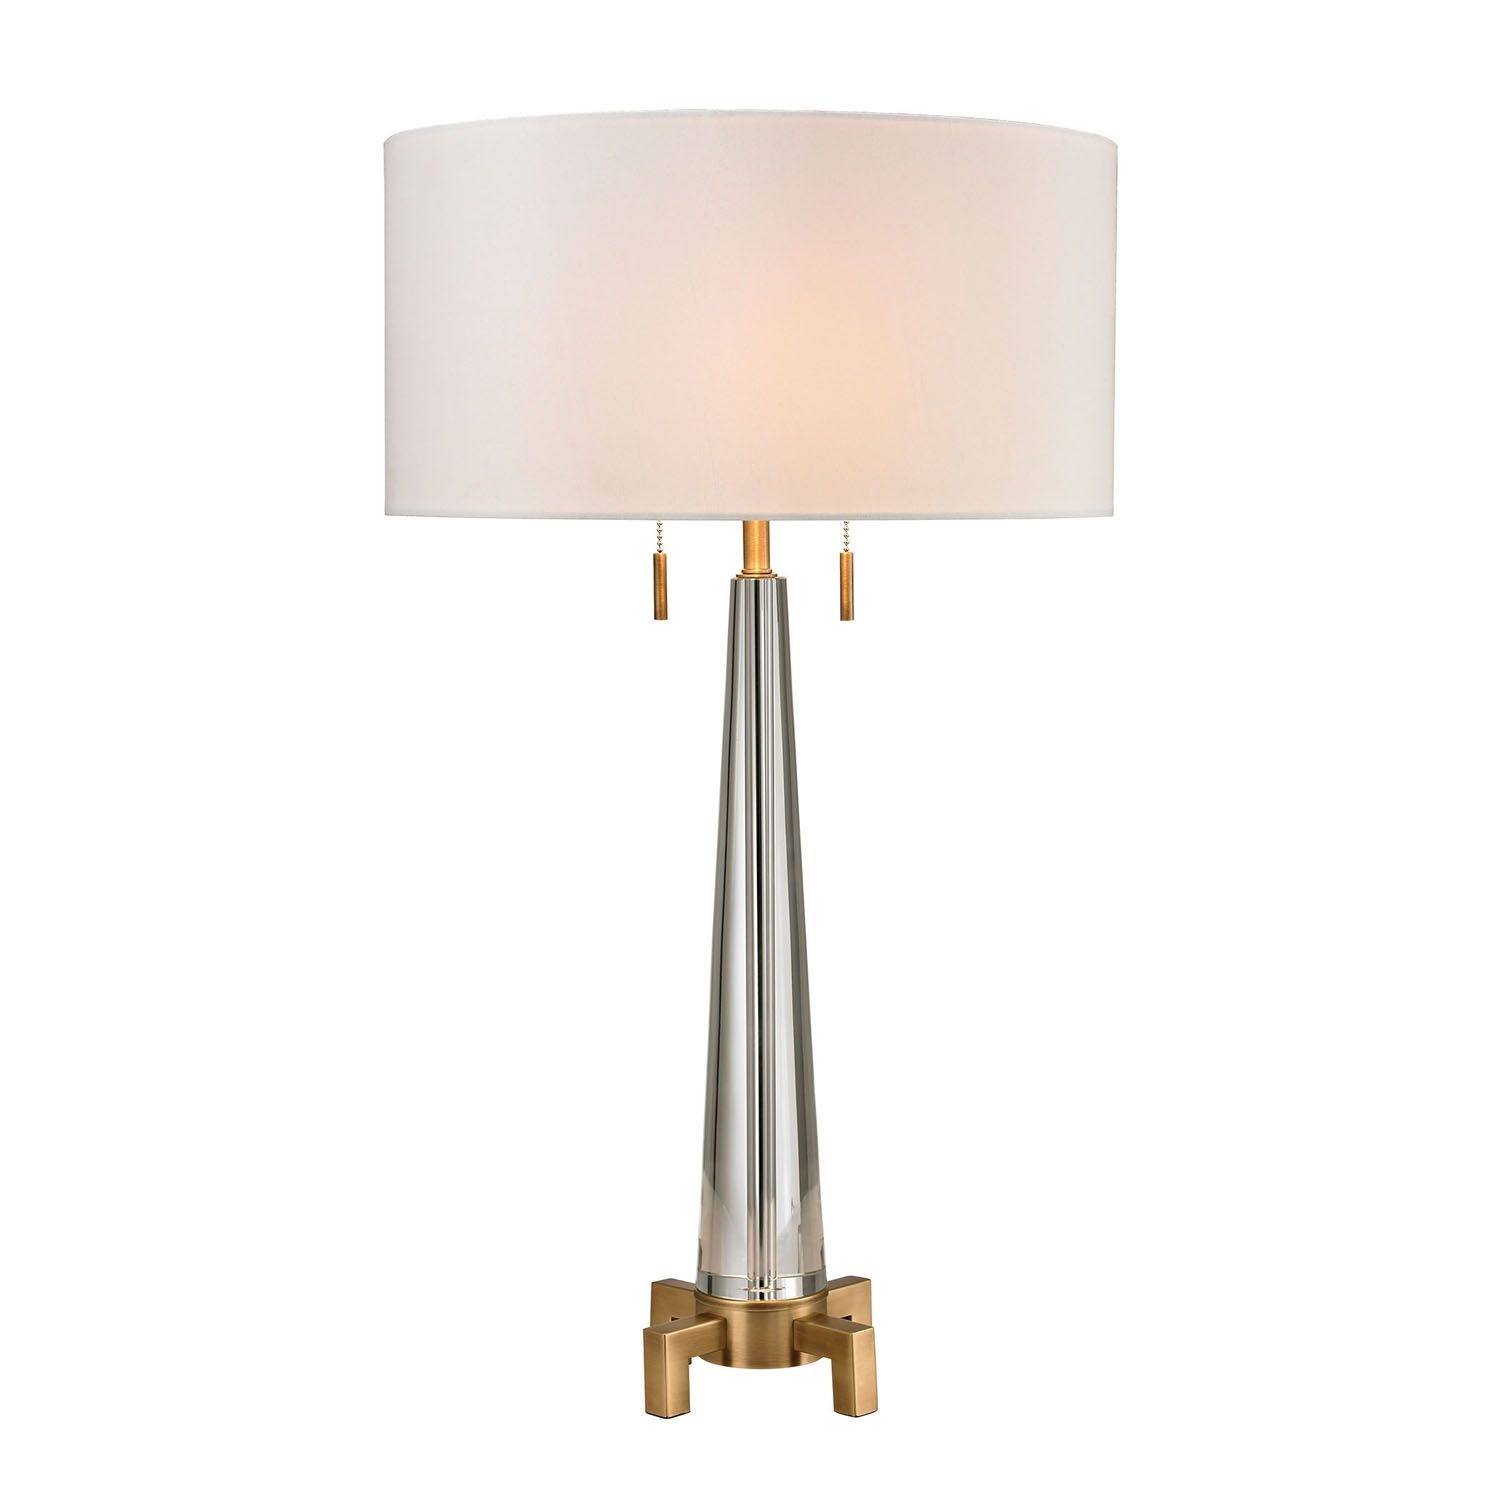 Merveilleux Dimond Solid Optic Table Lamp